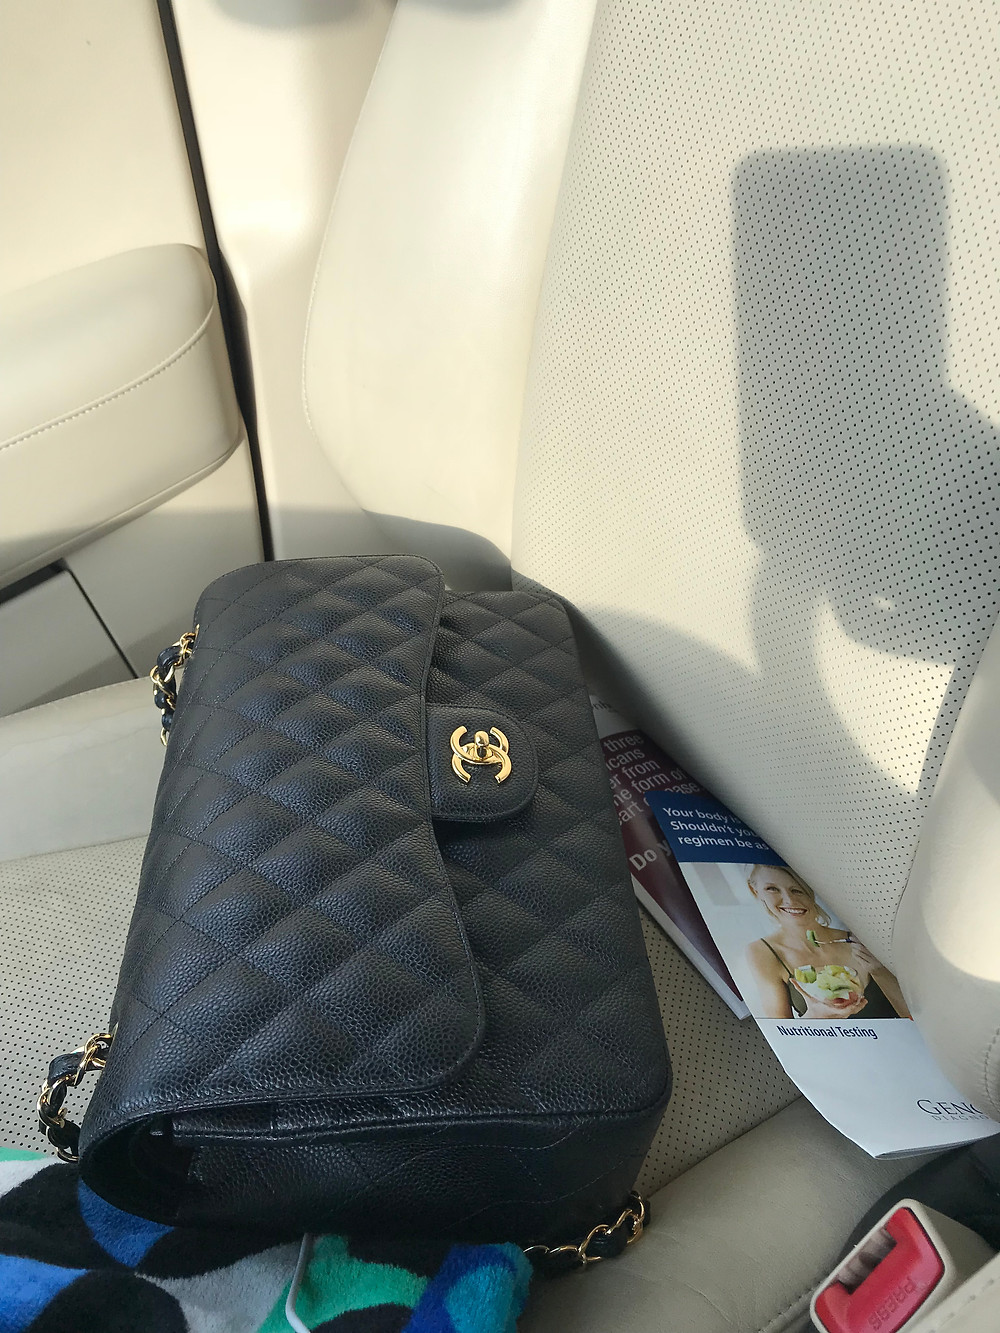 CHANEL, CHANEL JUMBO DOUBLE FLAP, CHANEL CAVIAR